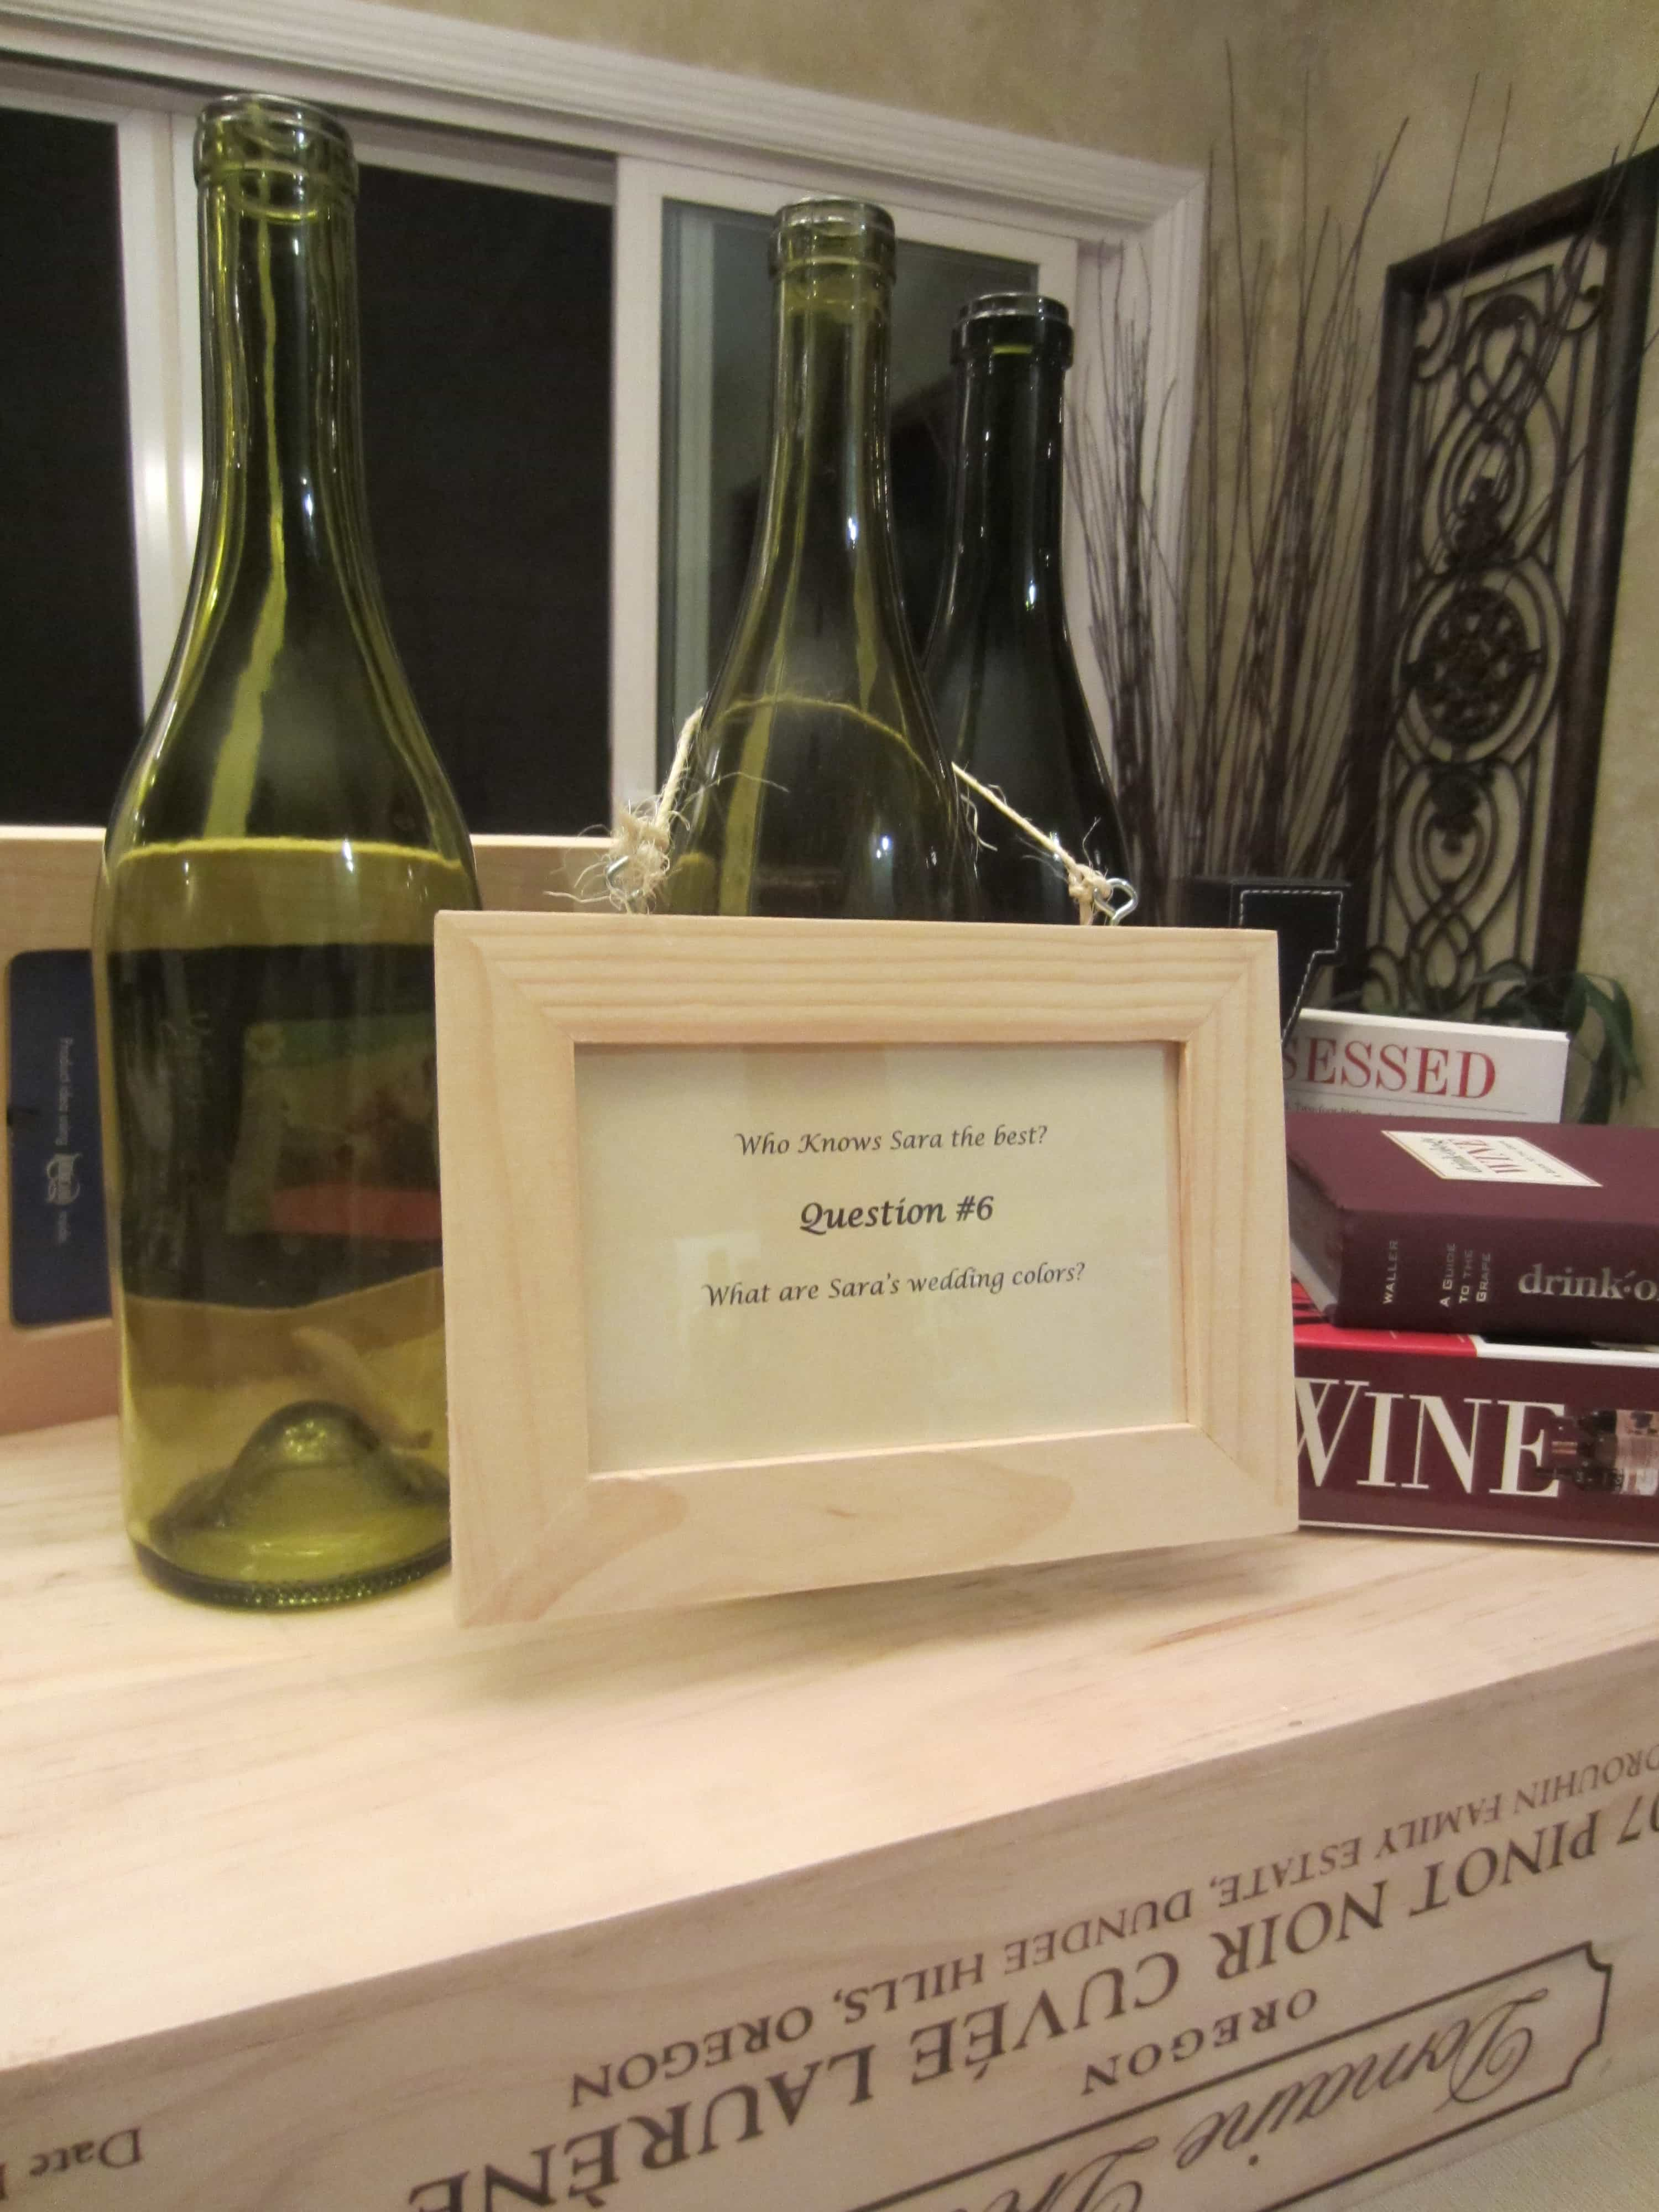 I Asked My Friends To Save Their Wine Bottles And Collected Them To Use As Party Decorations Click Here To Find Out More On How To Make Wine Bottle Frames